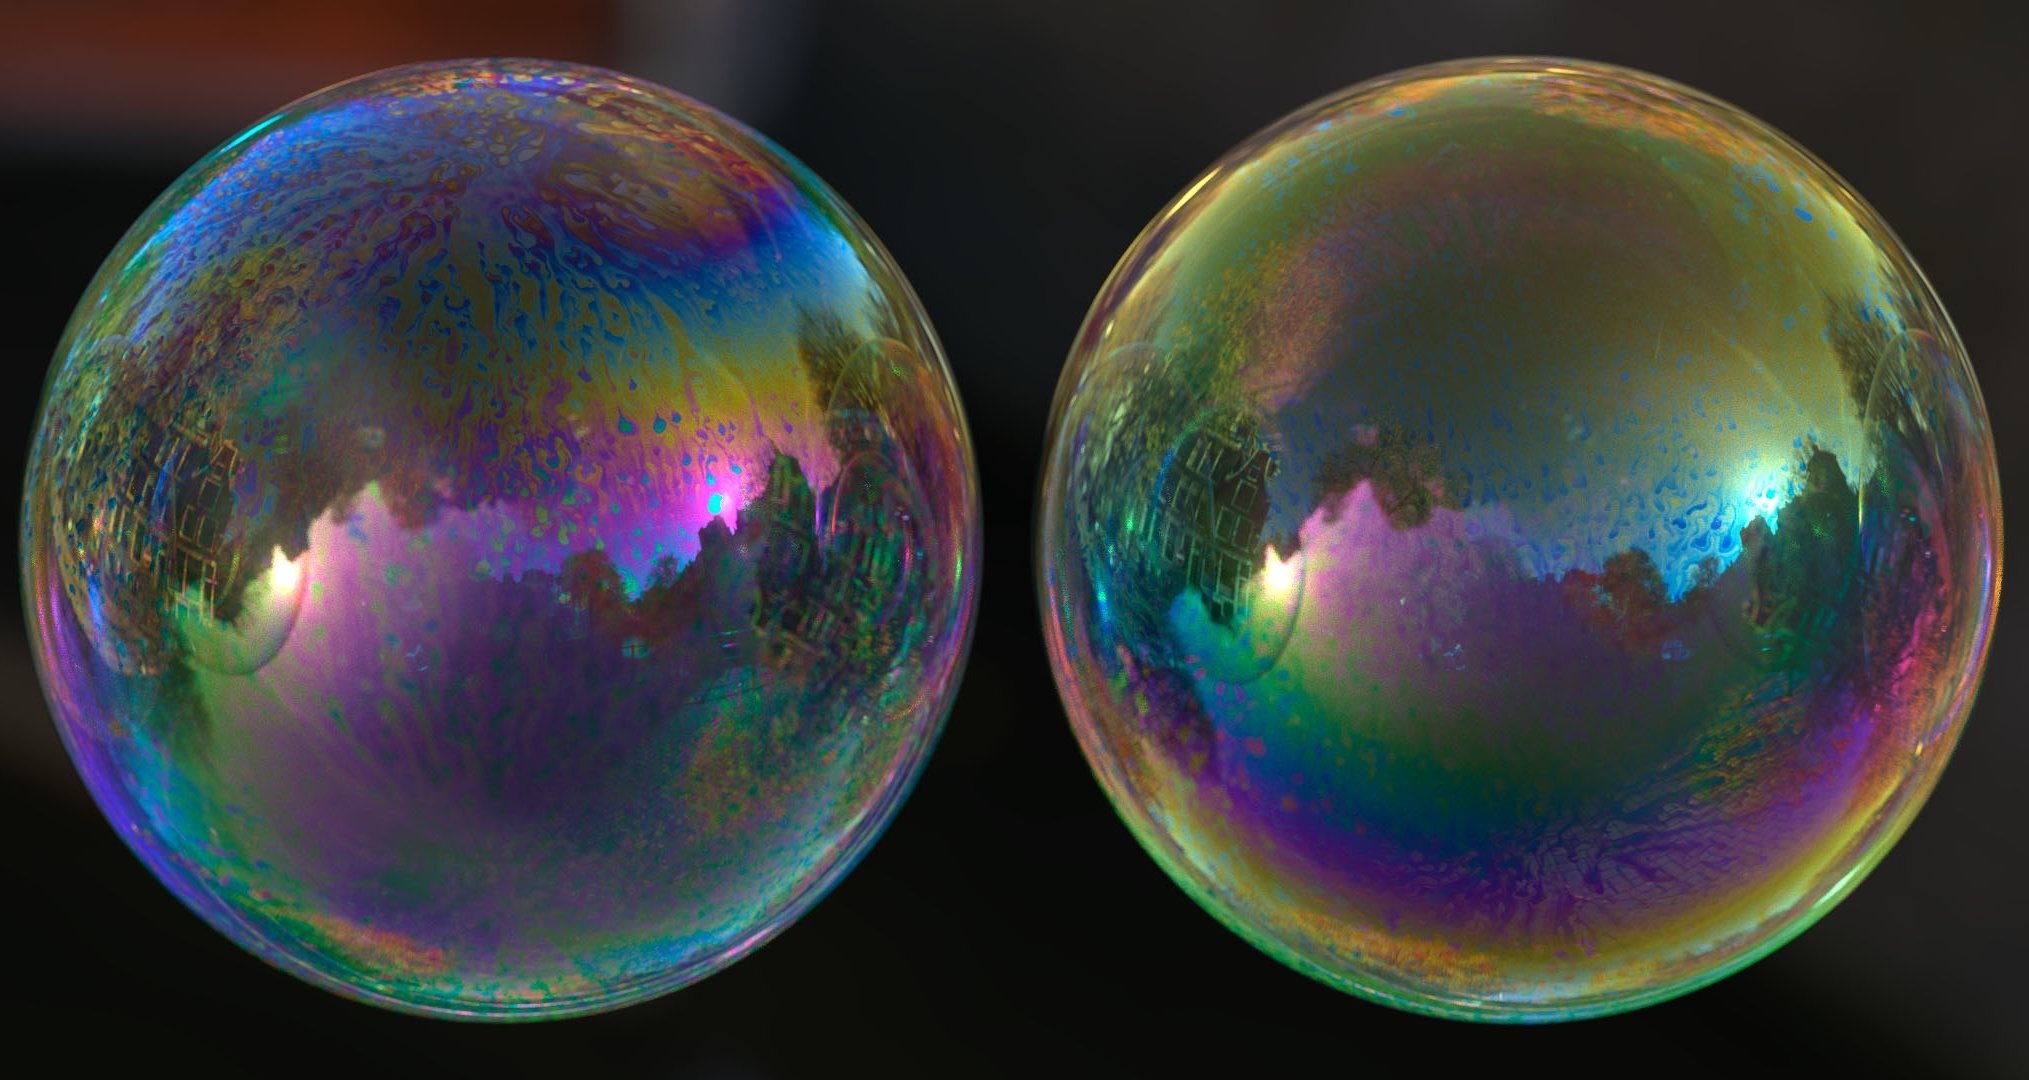 Chemomechanical Simulation of Soap Film Flow on Spherical Bubbles